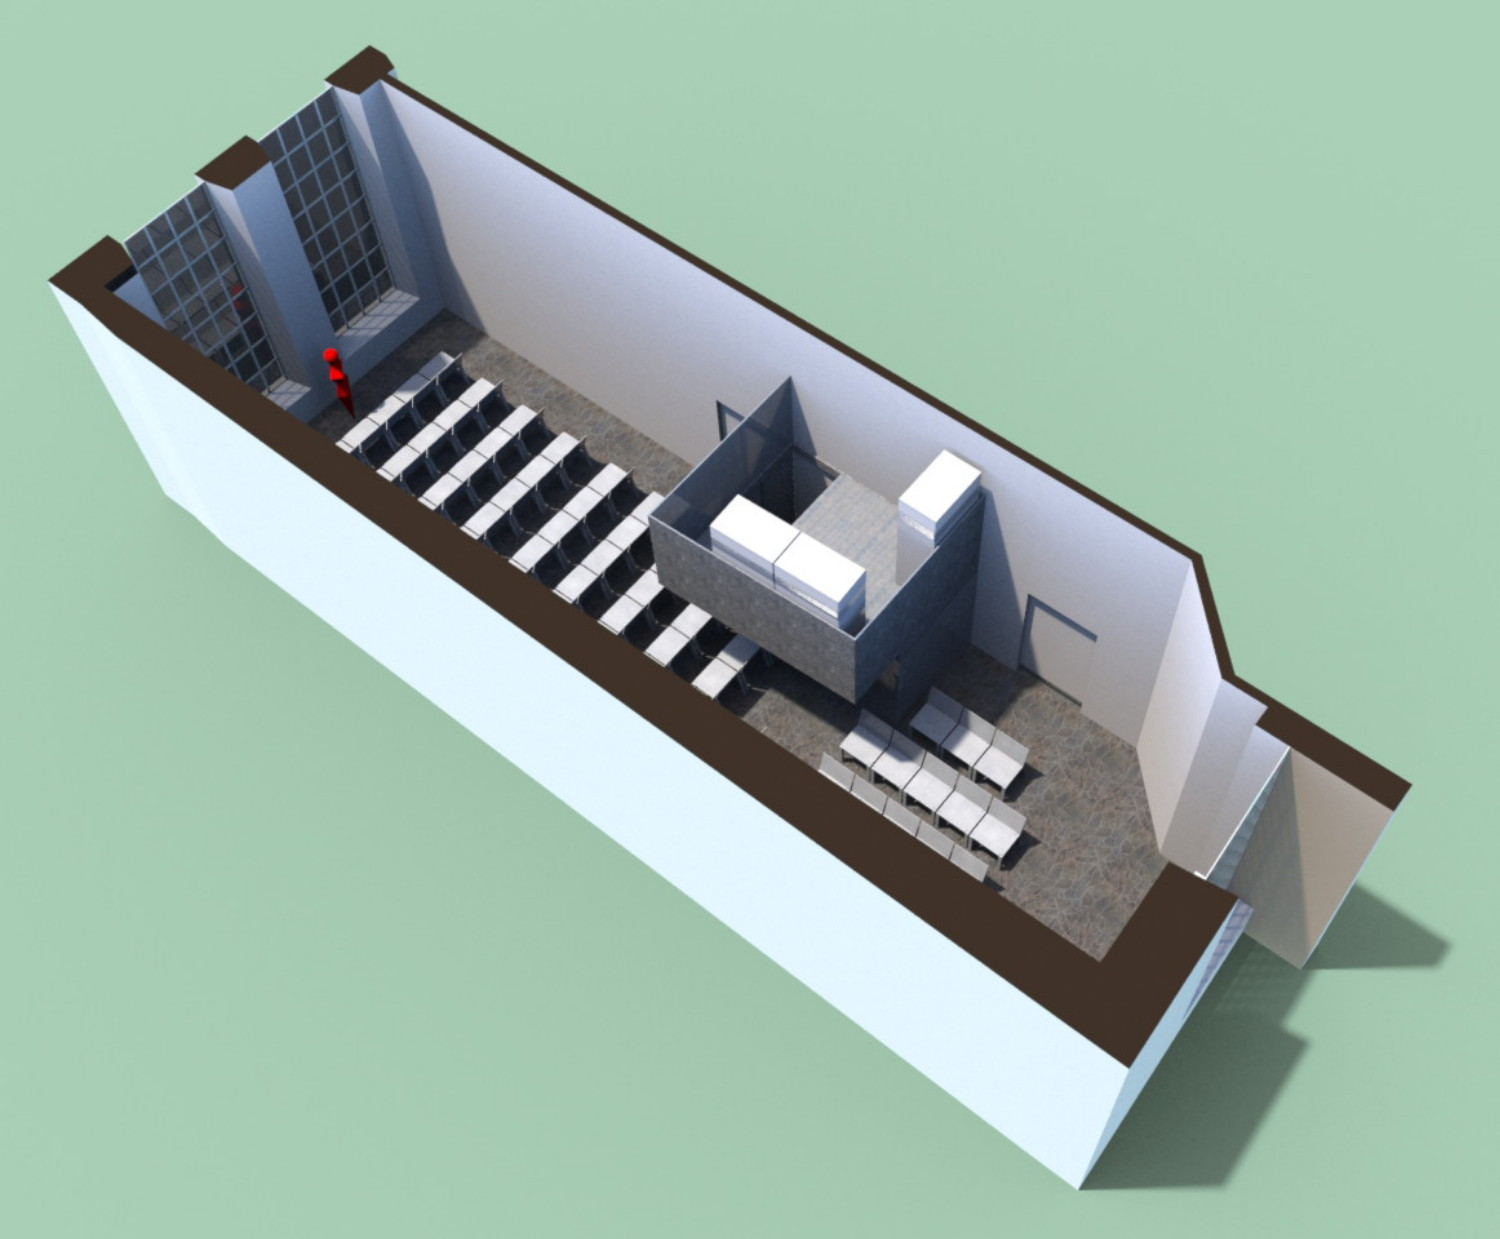 bird eye view of room with kitchen object MDB